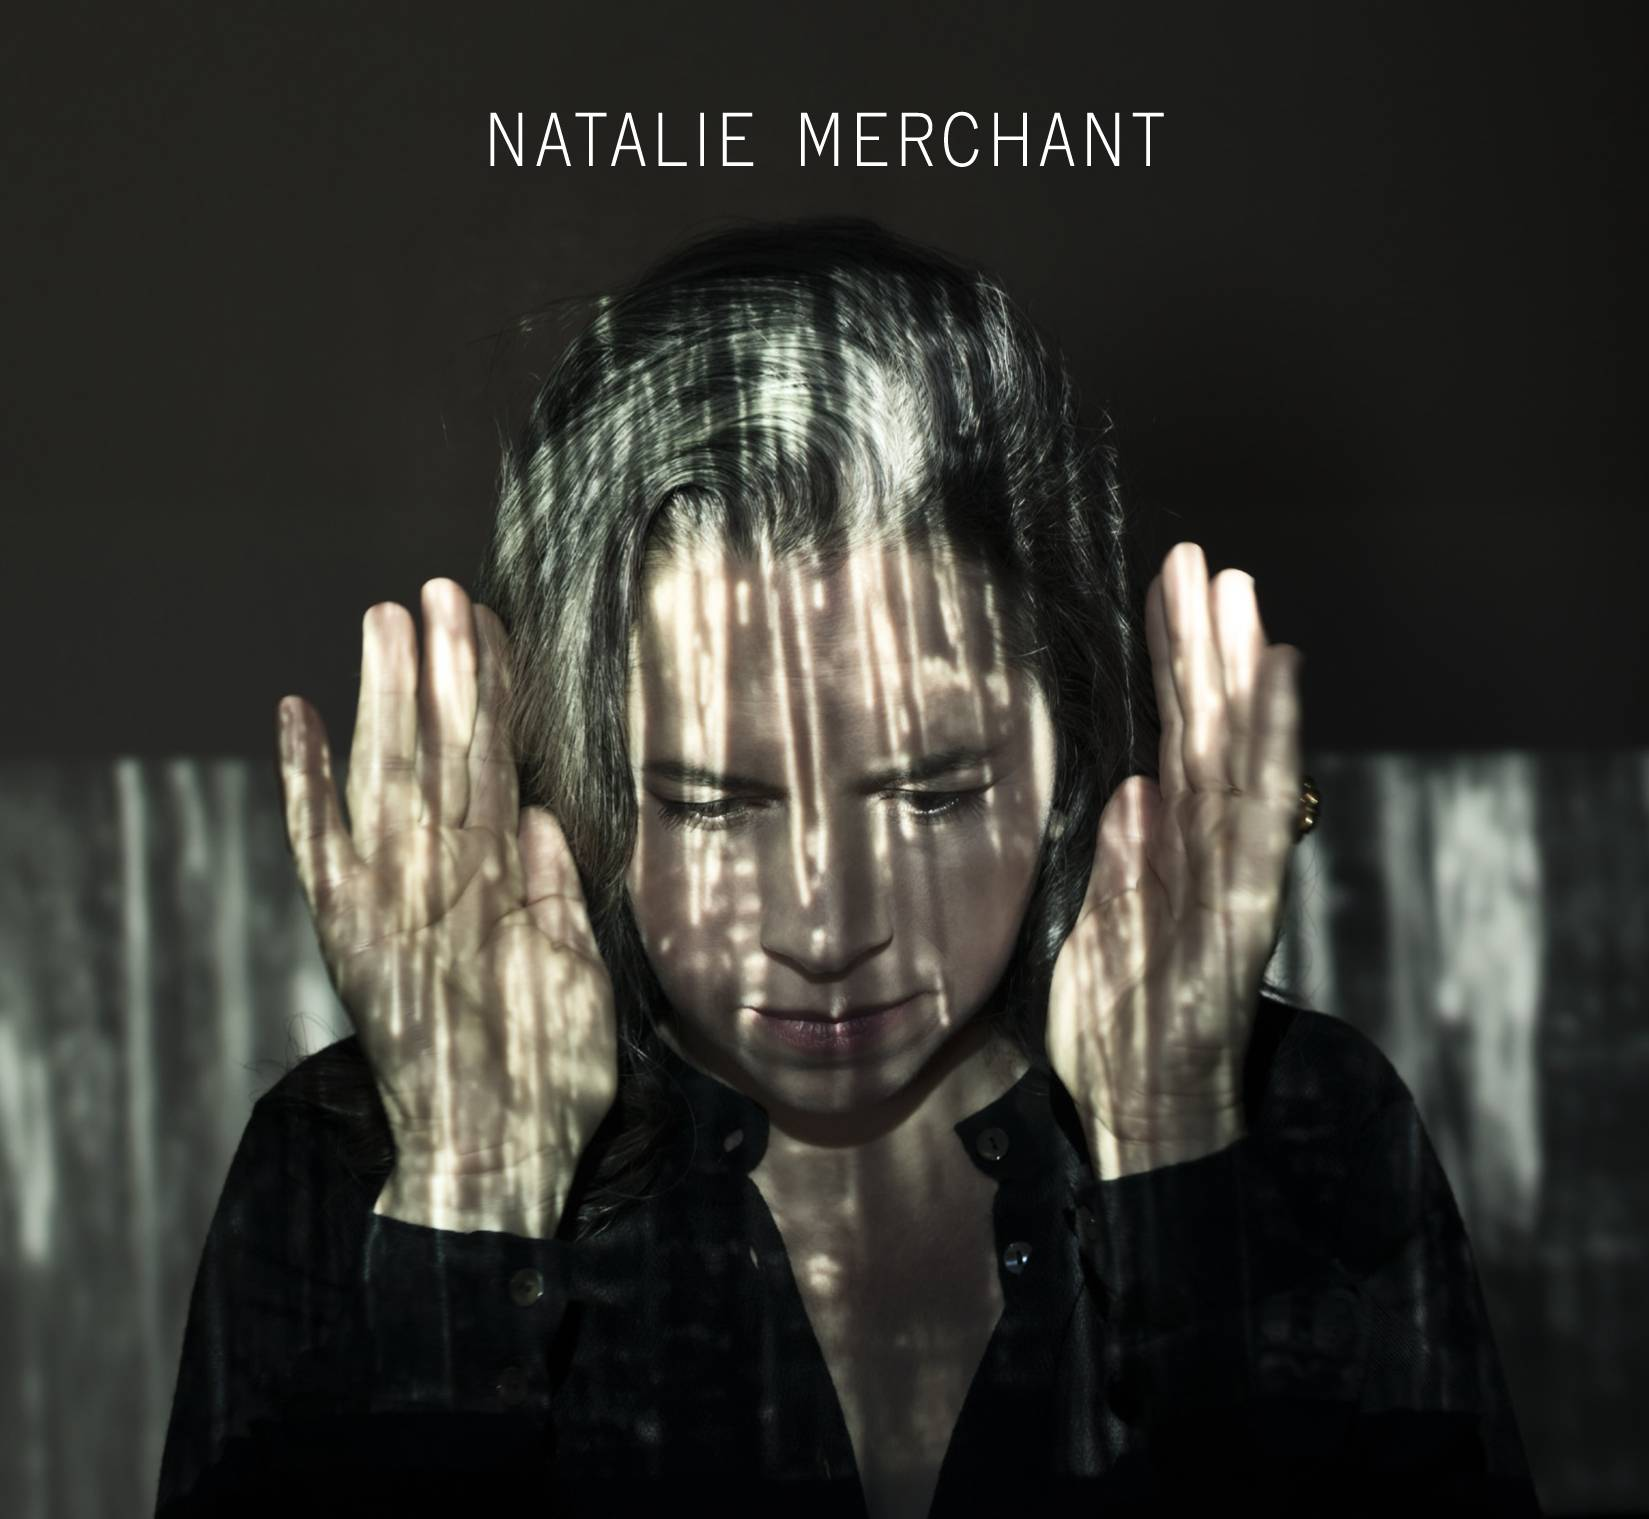 The self-titled album by Natalie Merchant is her first collection of entirely original songs in 13 years.